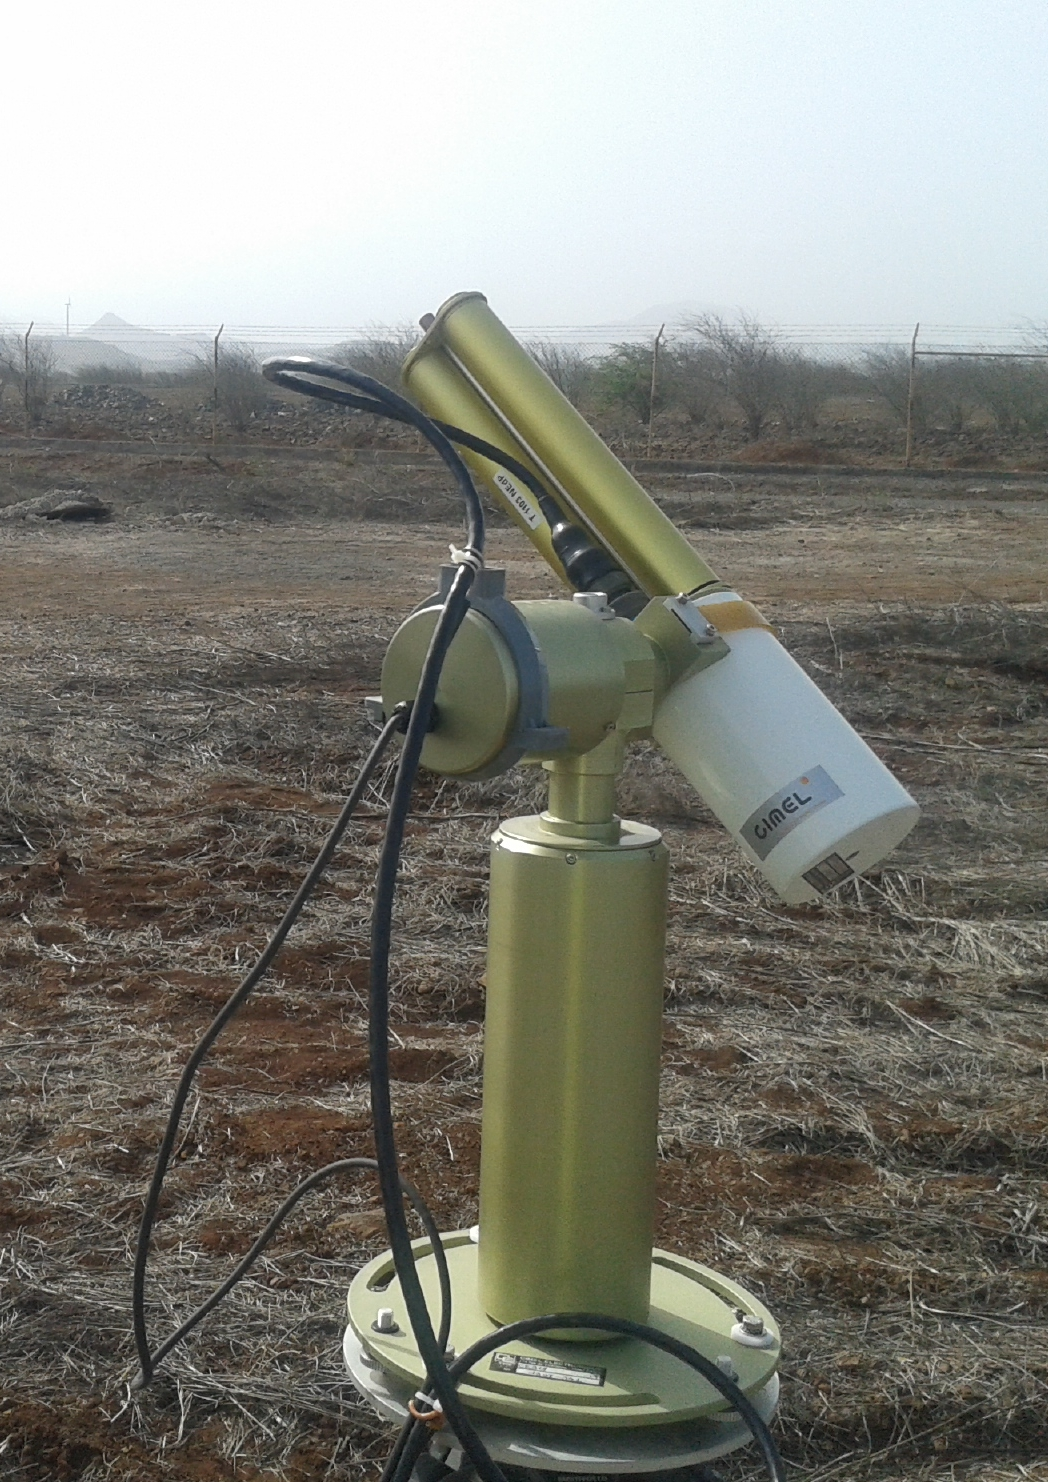 The Cimel sunphotometers deployed at Praia (Cape Verde) during SAVEX-D flight campaign. Copyright Victor Estelles.